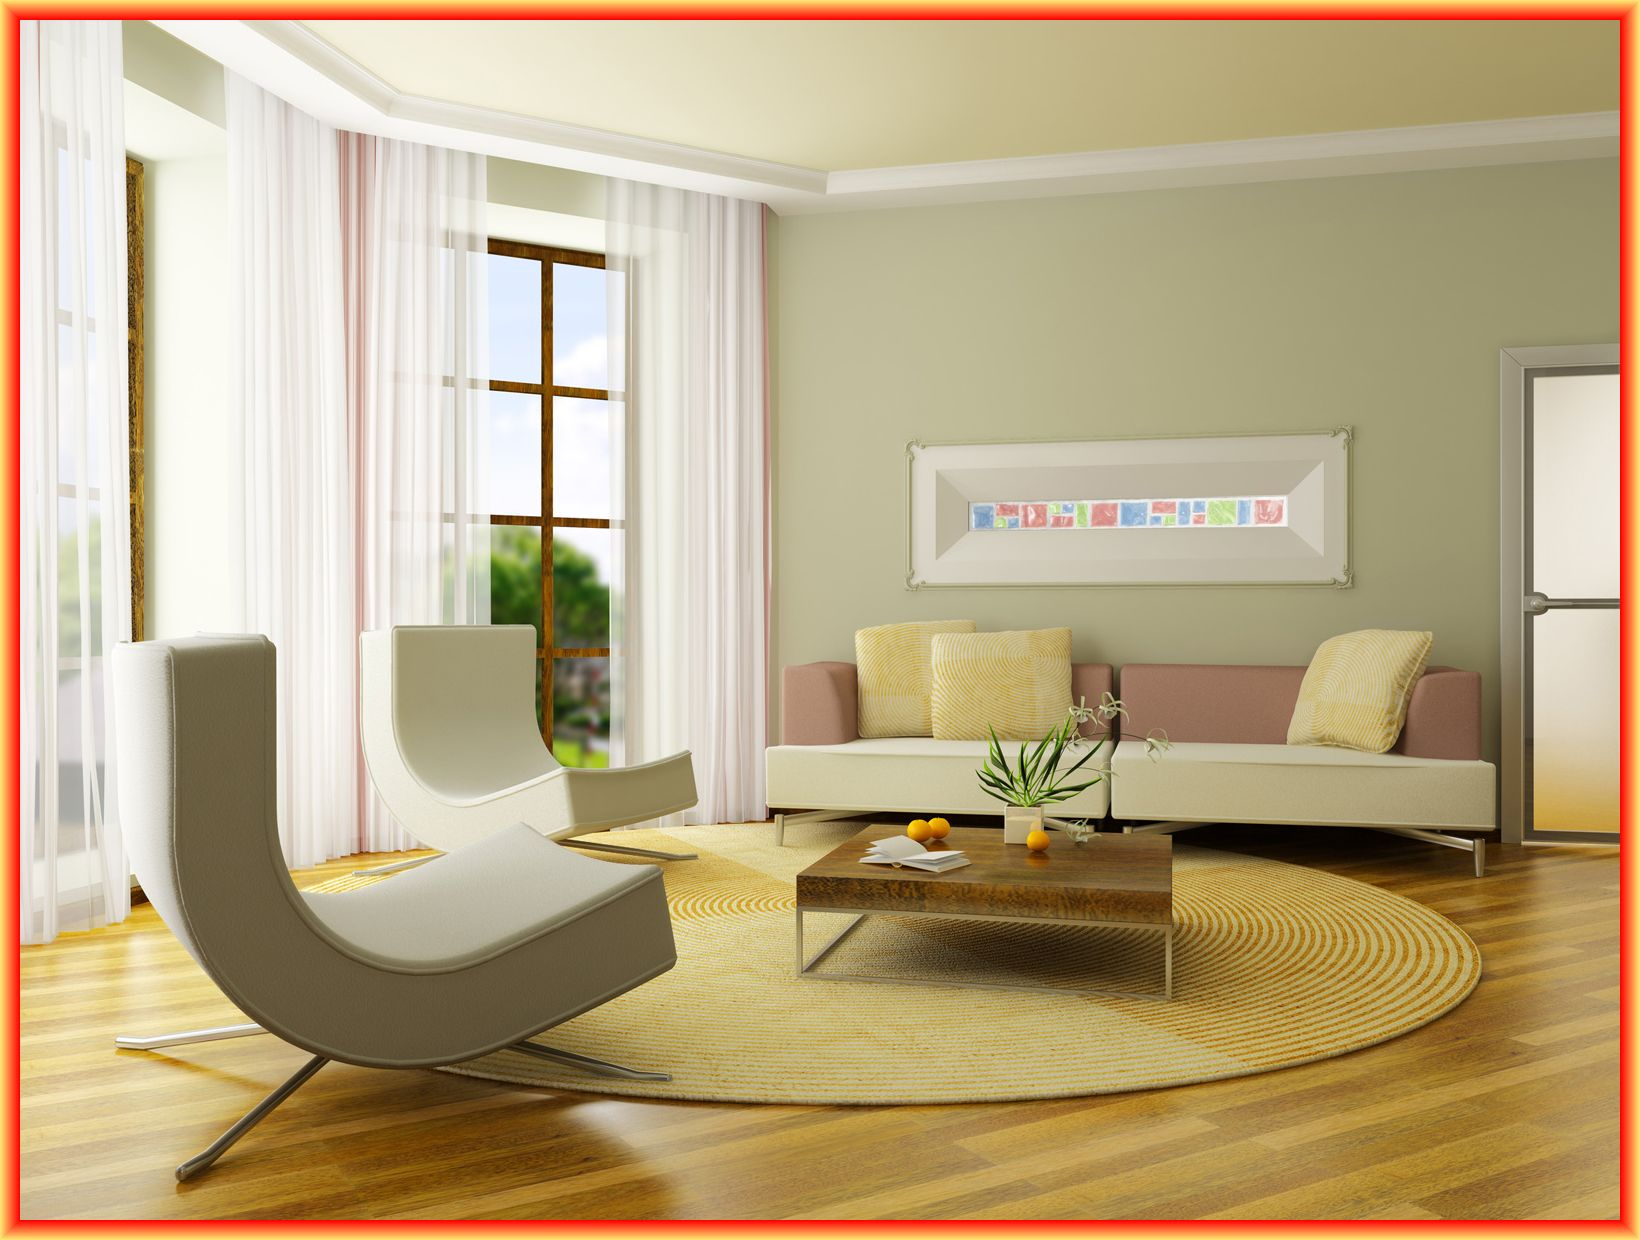 Enthralling wall painting designs for living room of innovative ideas interior paint ideas beautiful design